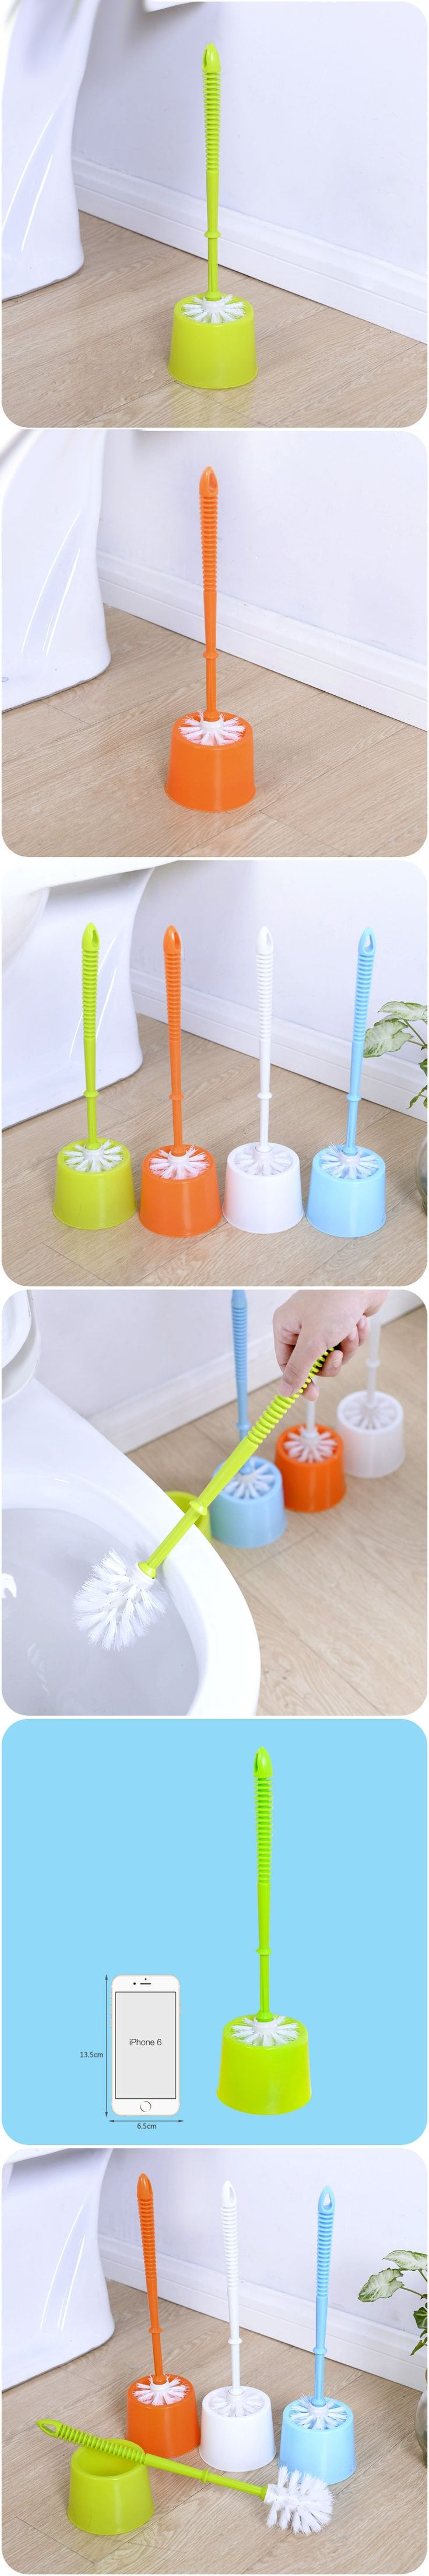 Cleaning Brush Bathroom Cleaning Supplies Soft Hair Long Handle Clean Toilet Brush Clean Plastic with Base Toilet Brush Set